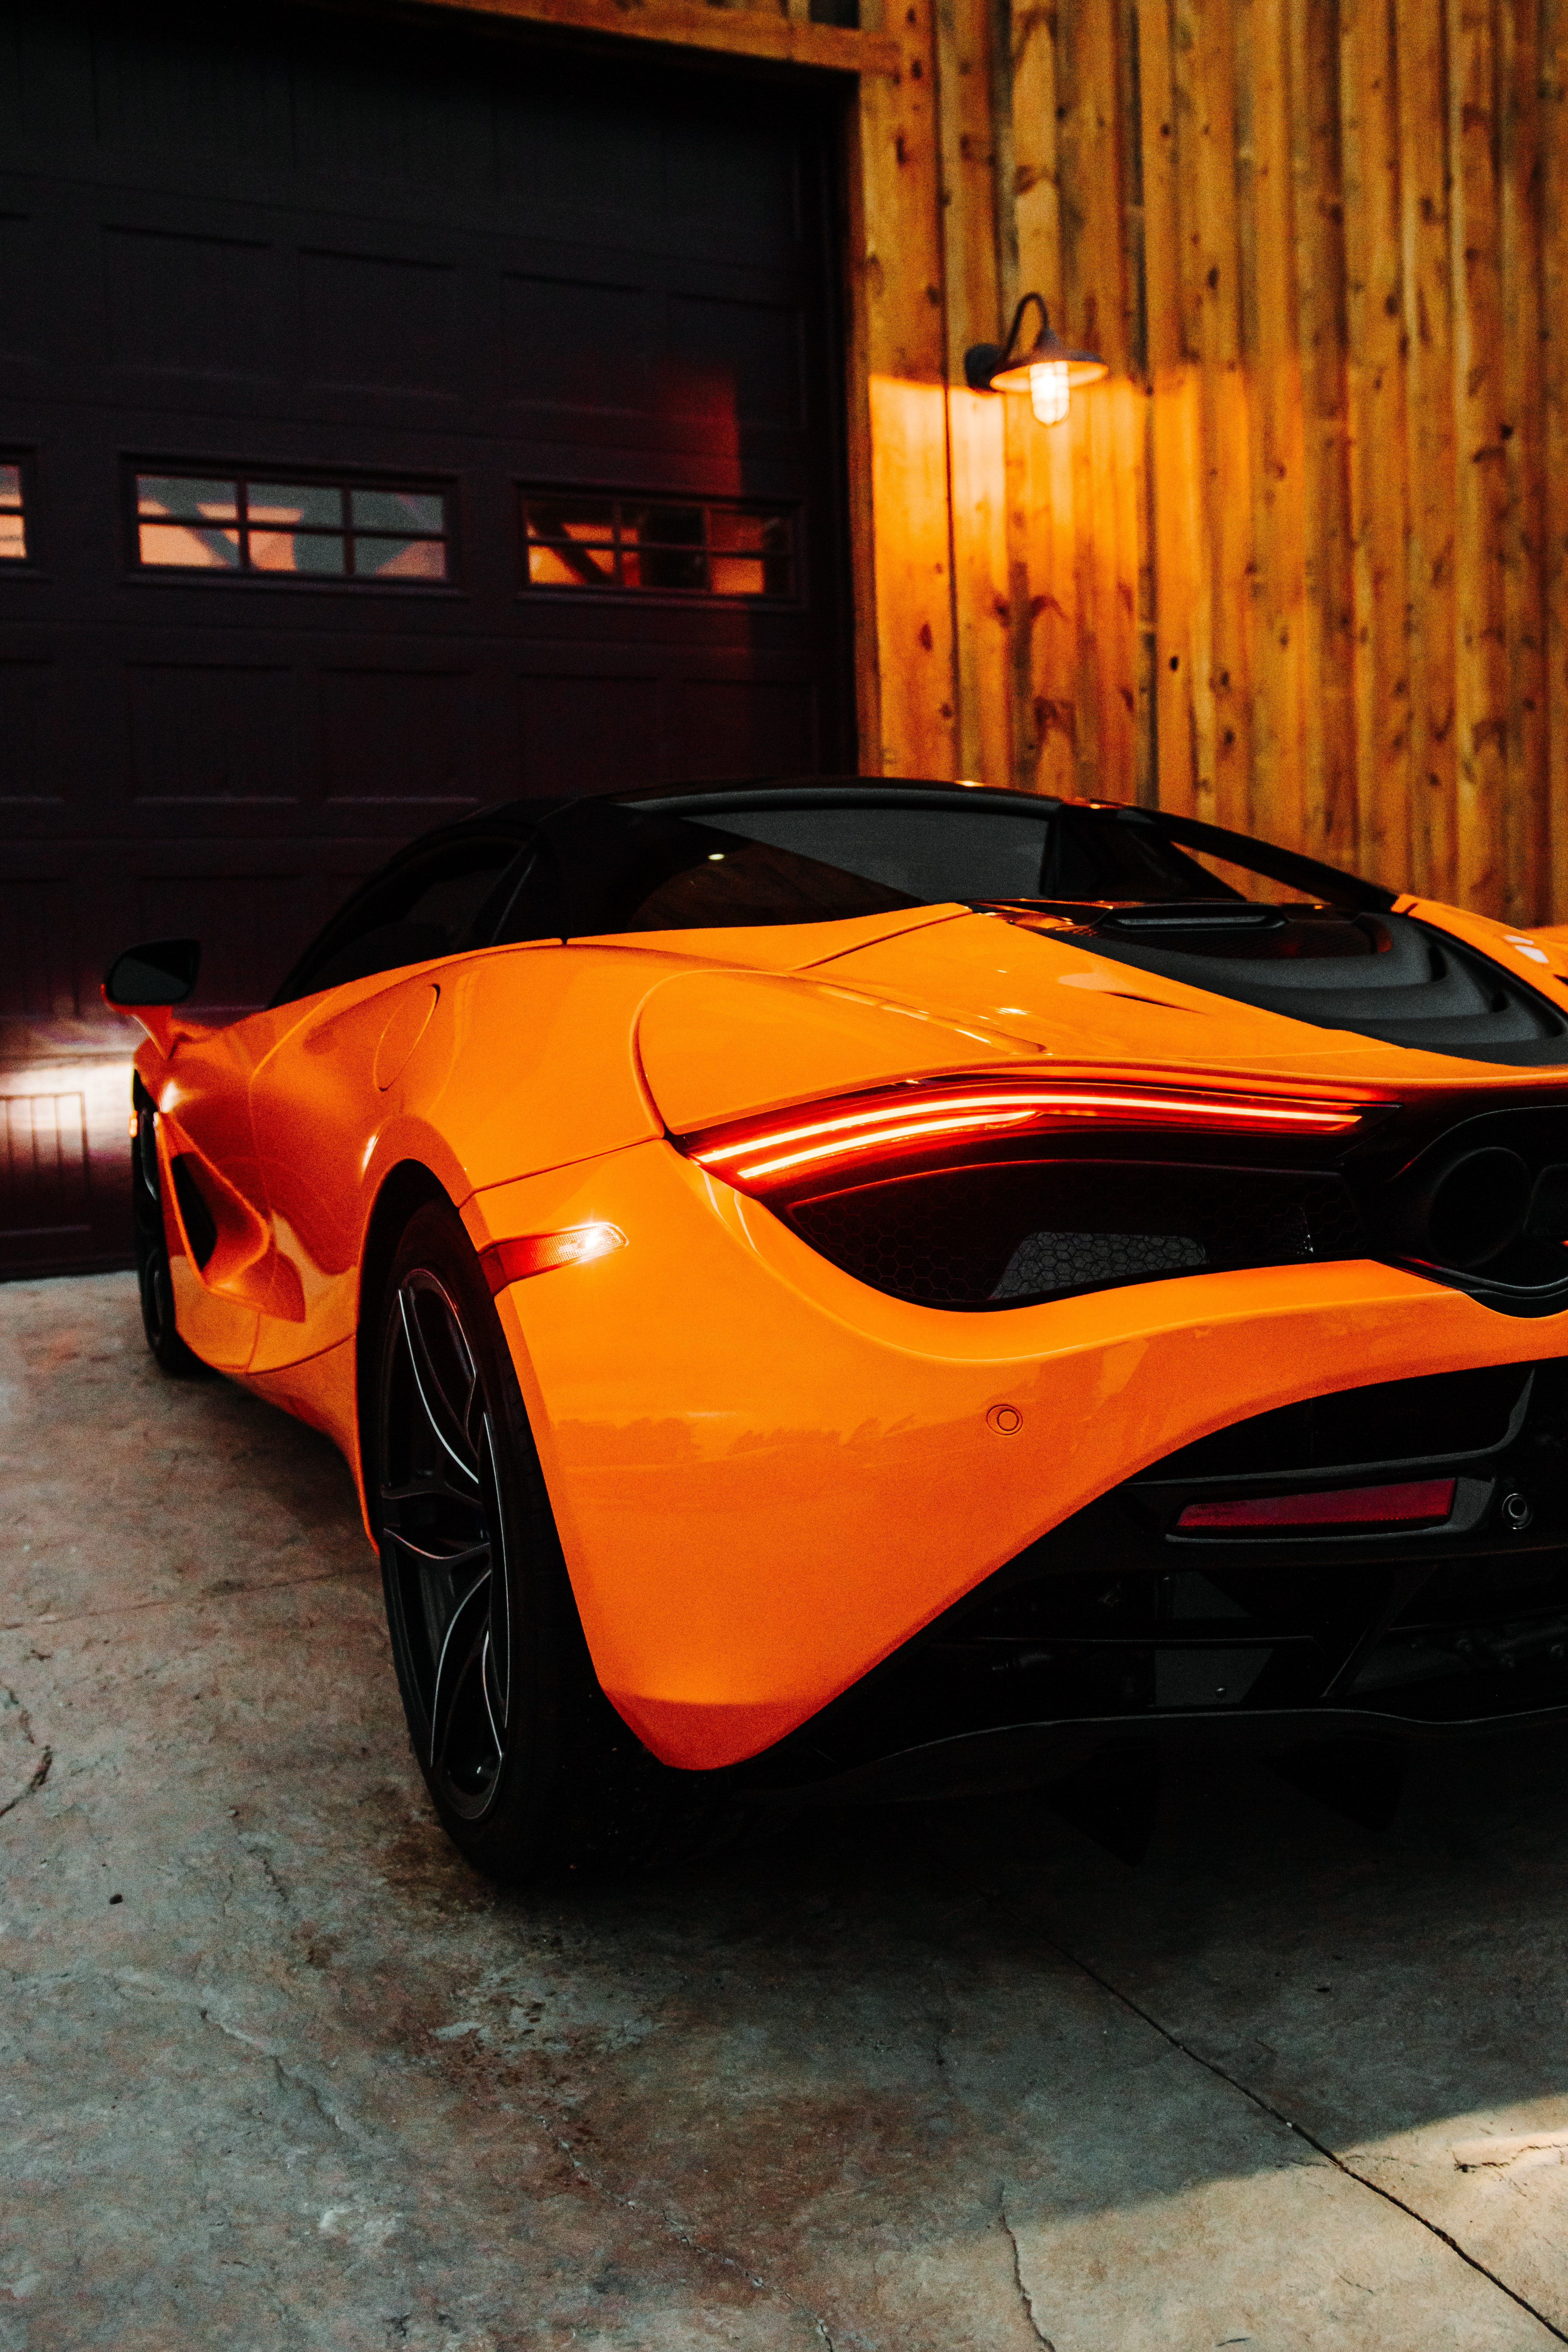 106156 download wallpaper Cars, Mclaren, Car, Supercar, Lamp, Lantern, Back View, Rear View screensavers and pictures for free